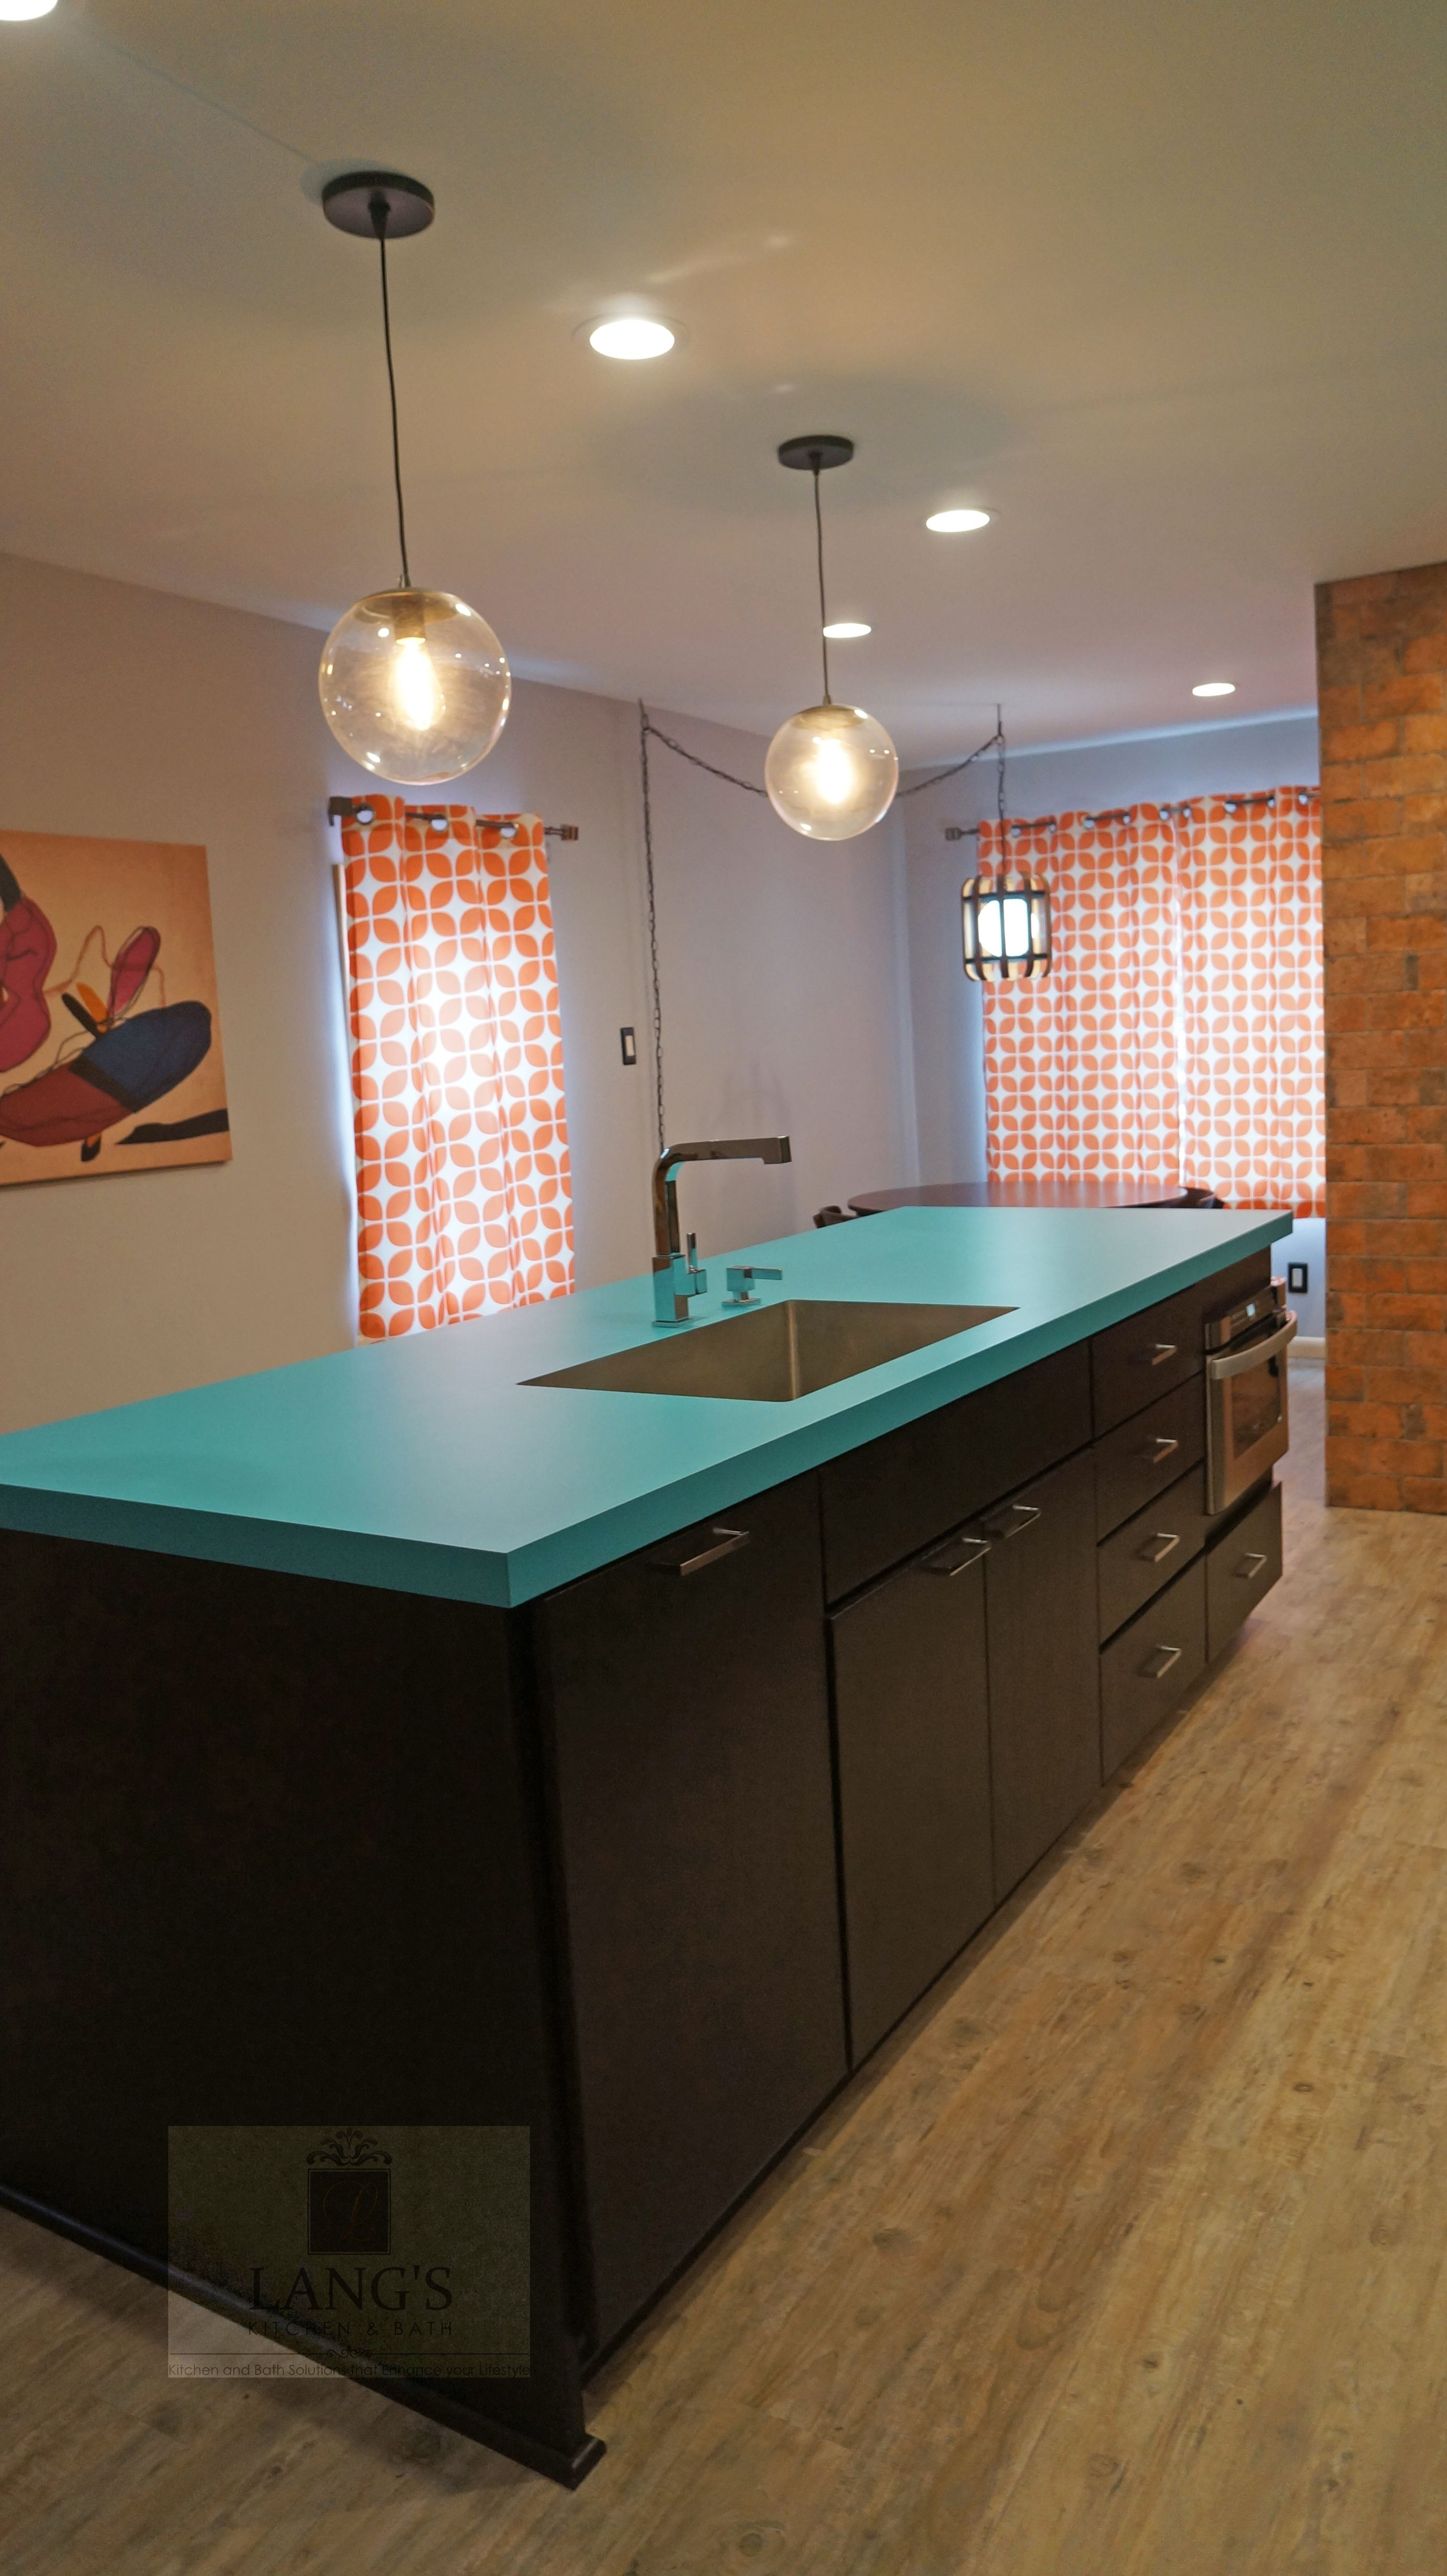 This dynamic kitchen design is oneofakind with a blue